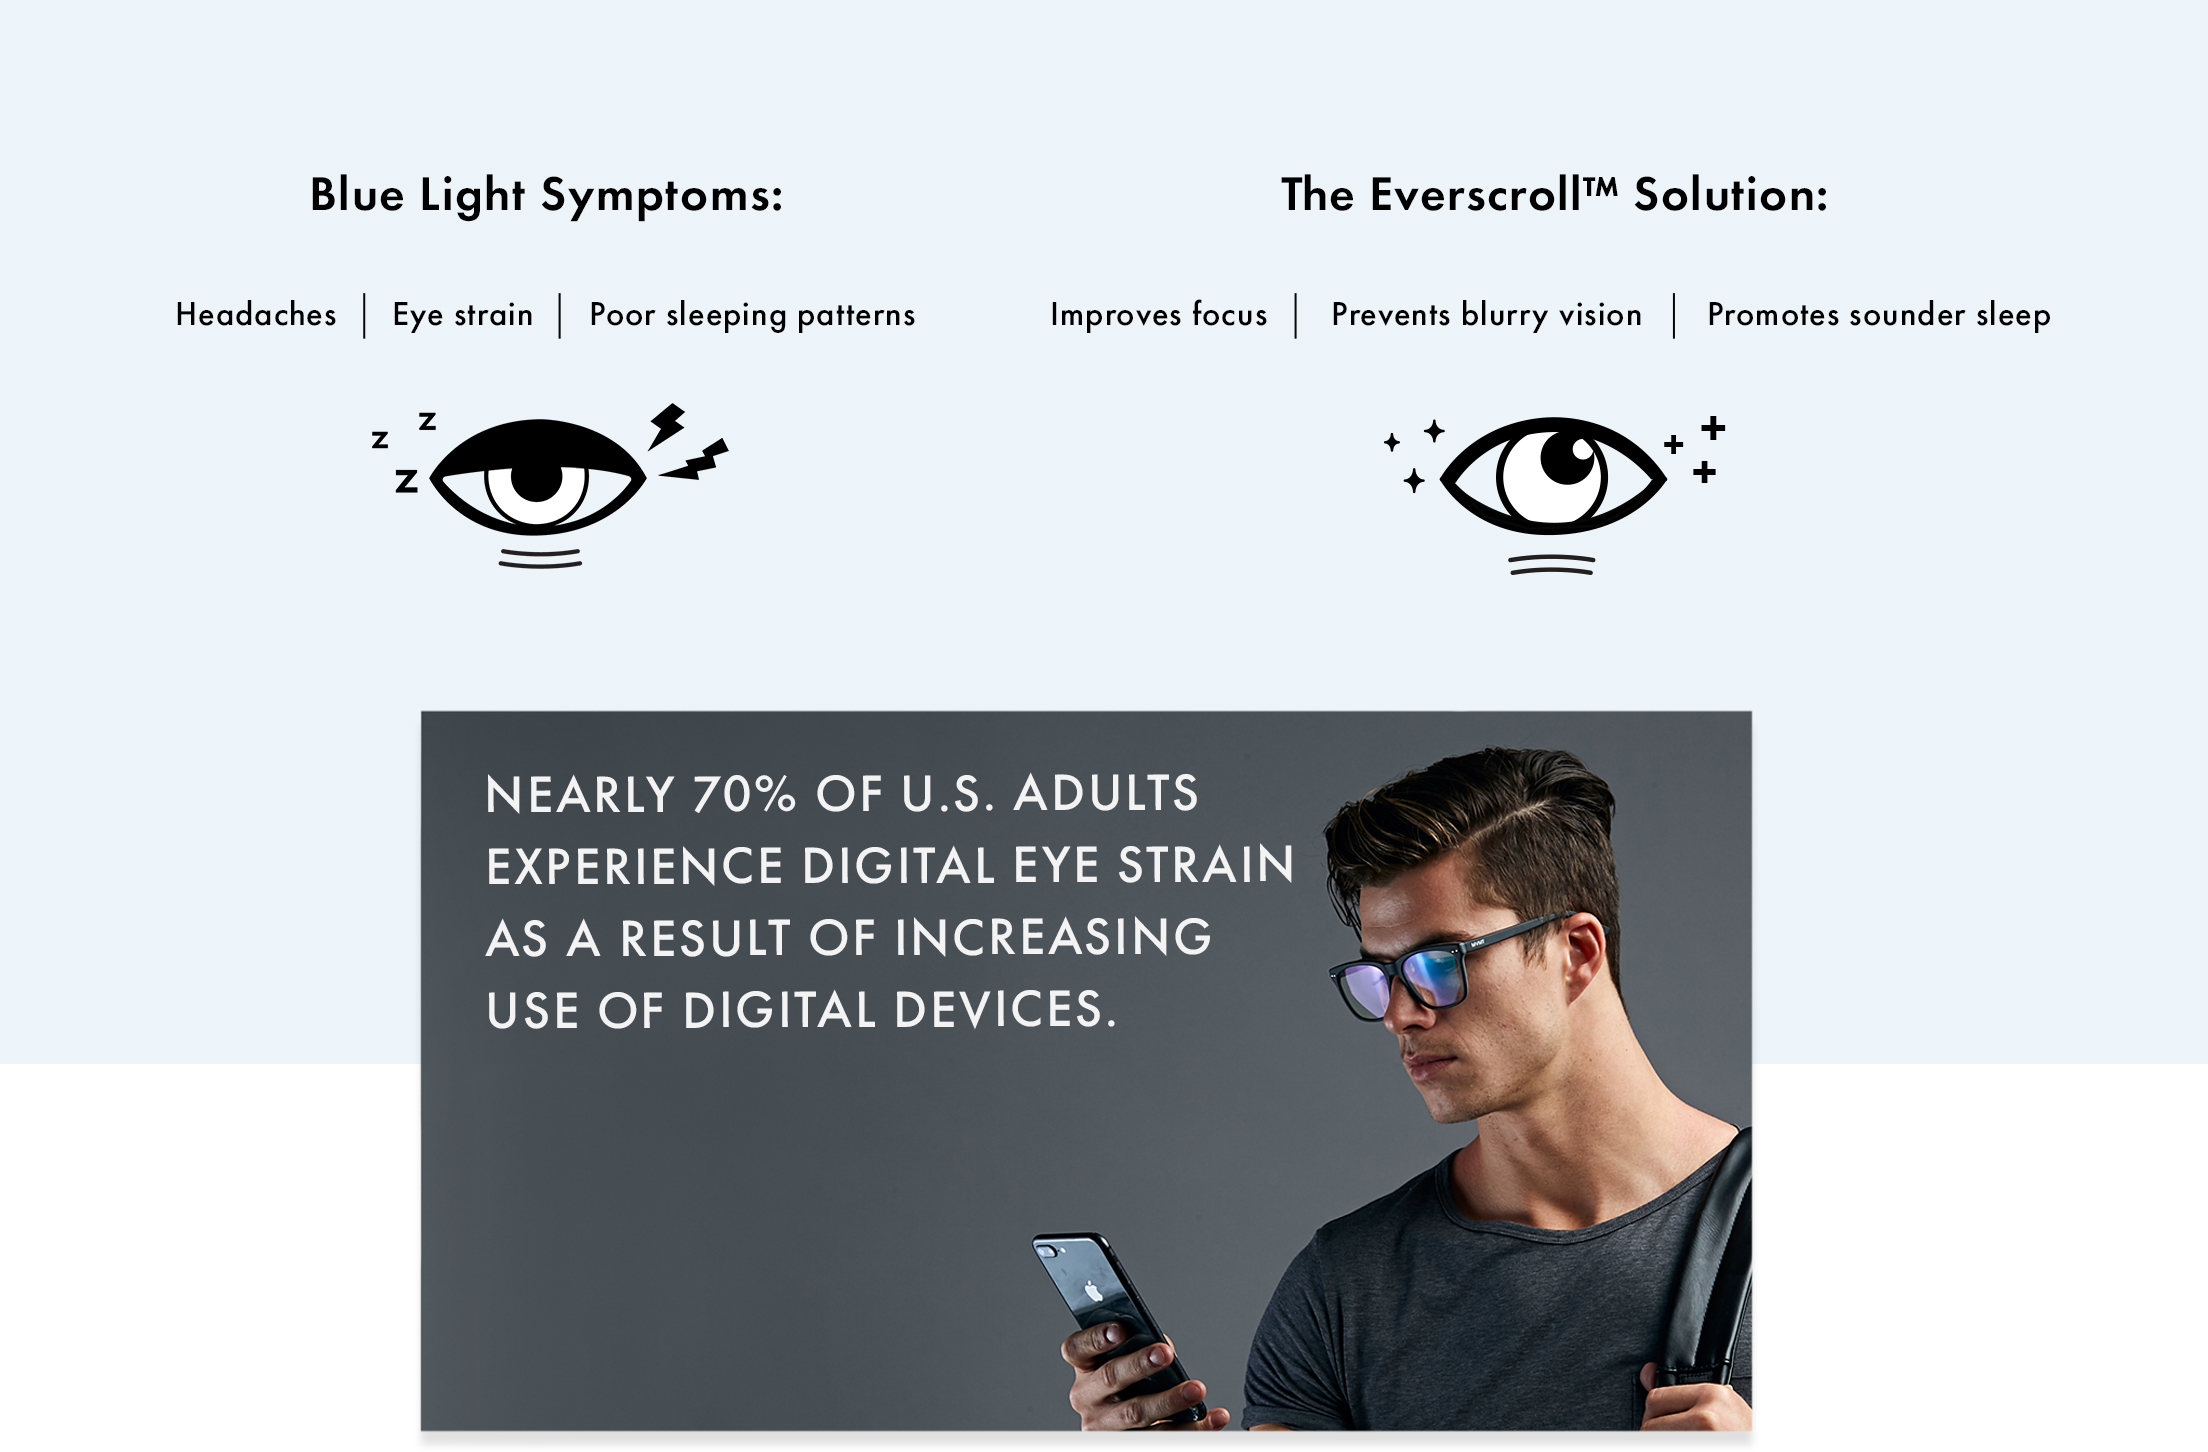 Blue light symptoms: headaches, eye strain, poor sleeping patterns. The Everscroll (tm) solution: improves focus, prevents blurry vision, promotes sounder sleep. Nearly 70% of US adults experience digital eye strain as a result of increasing use of digital devices.